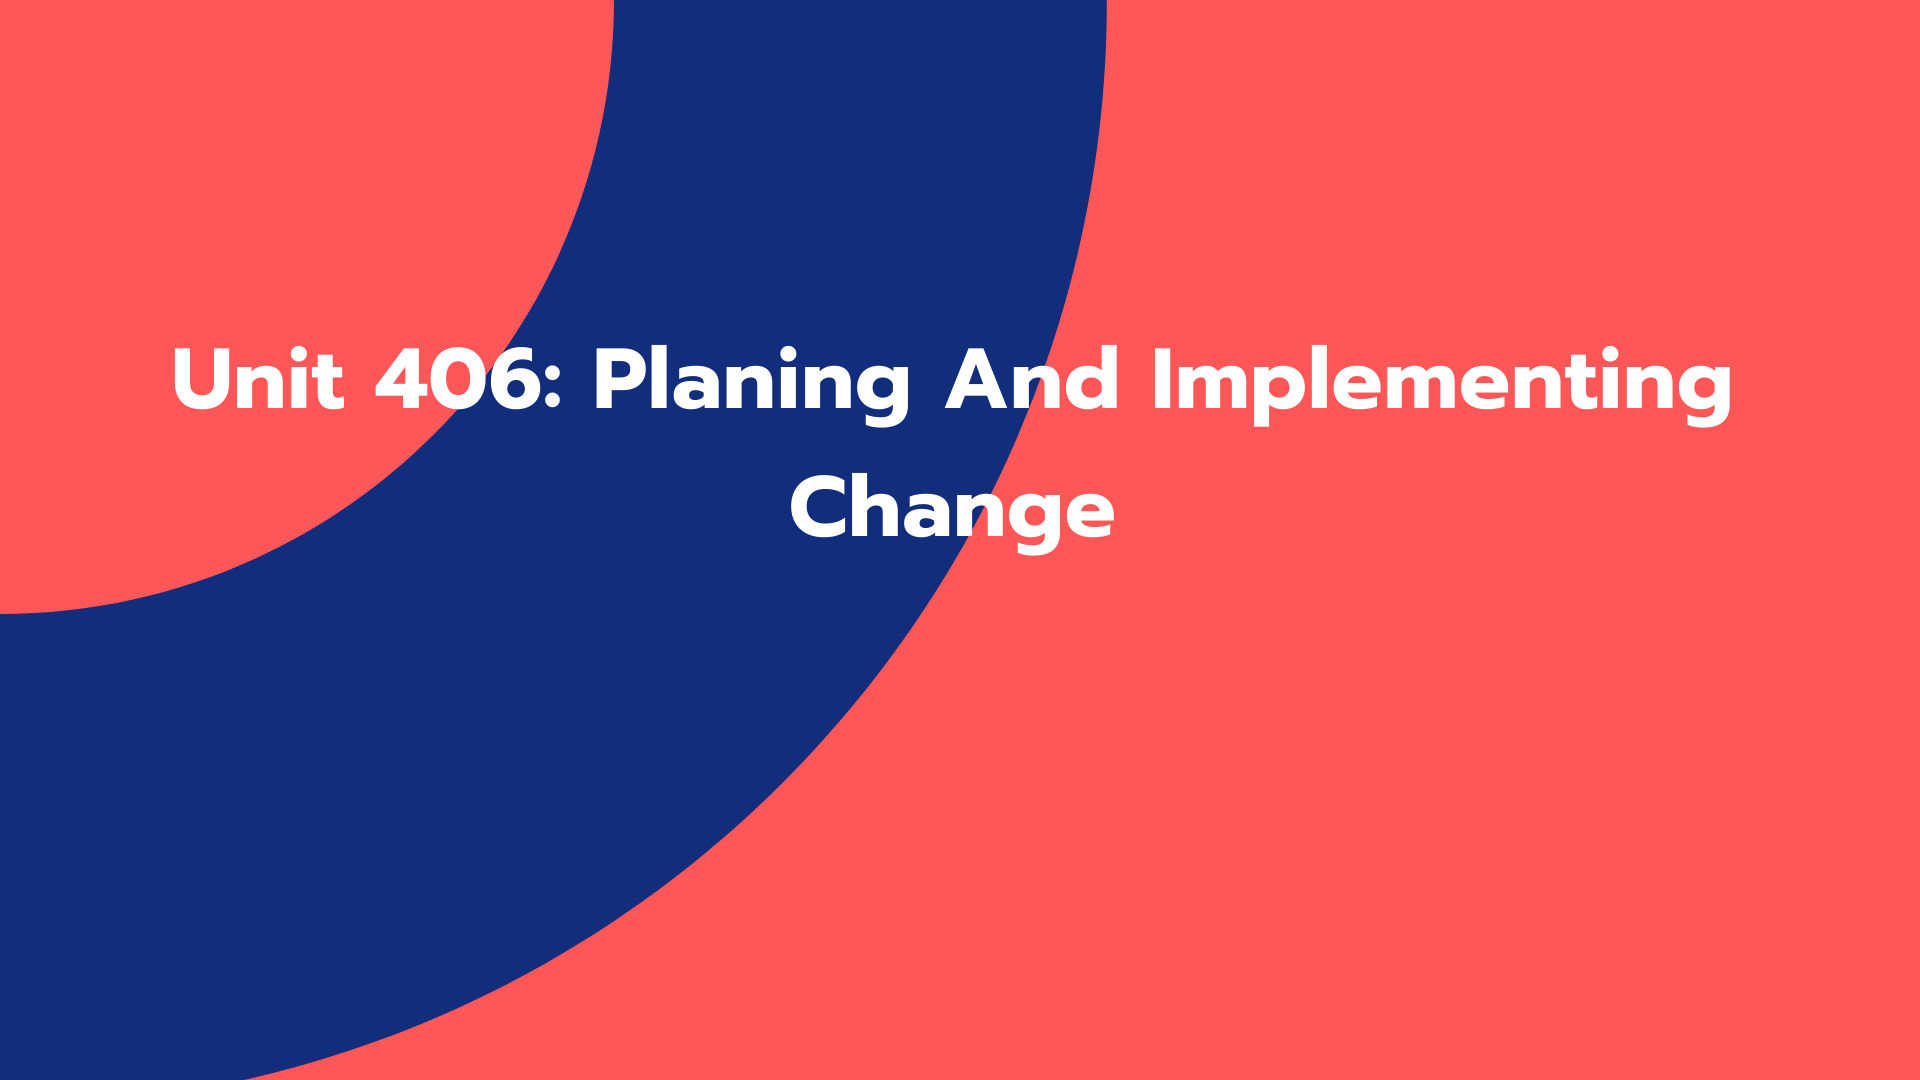 Unit 406: Planing And Implementing Change